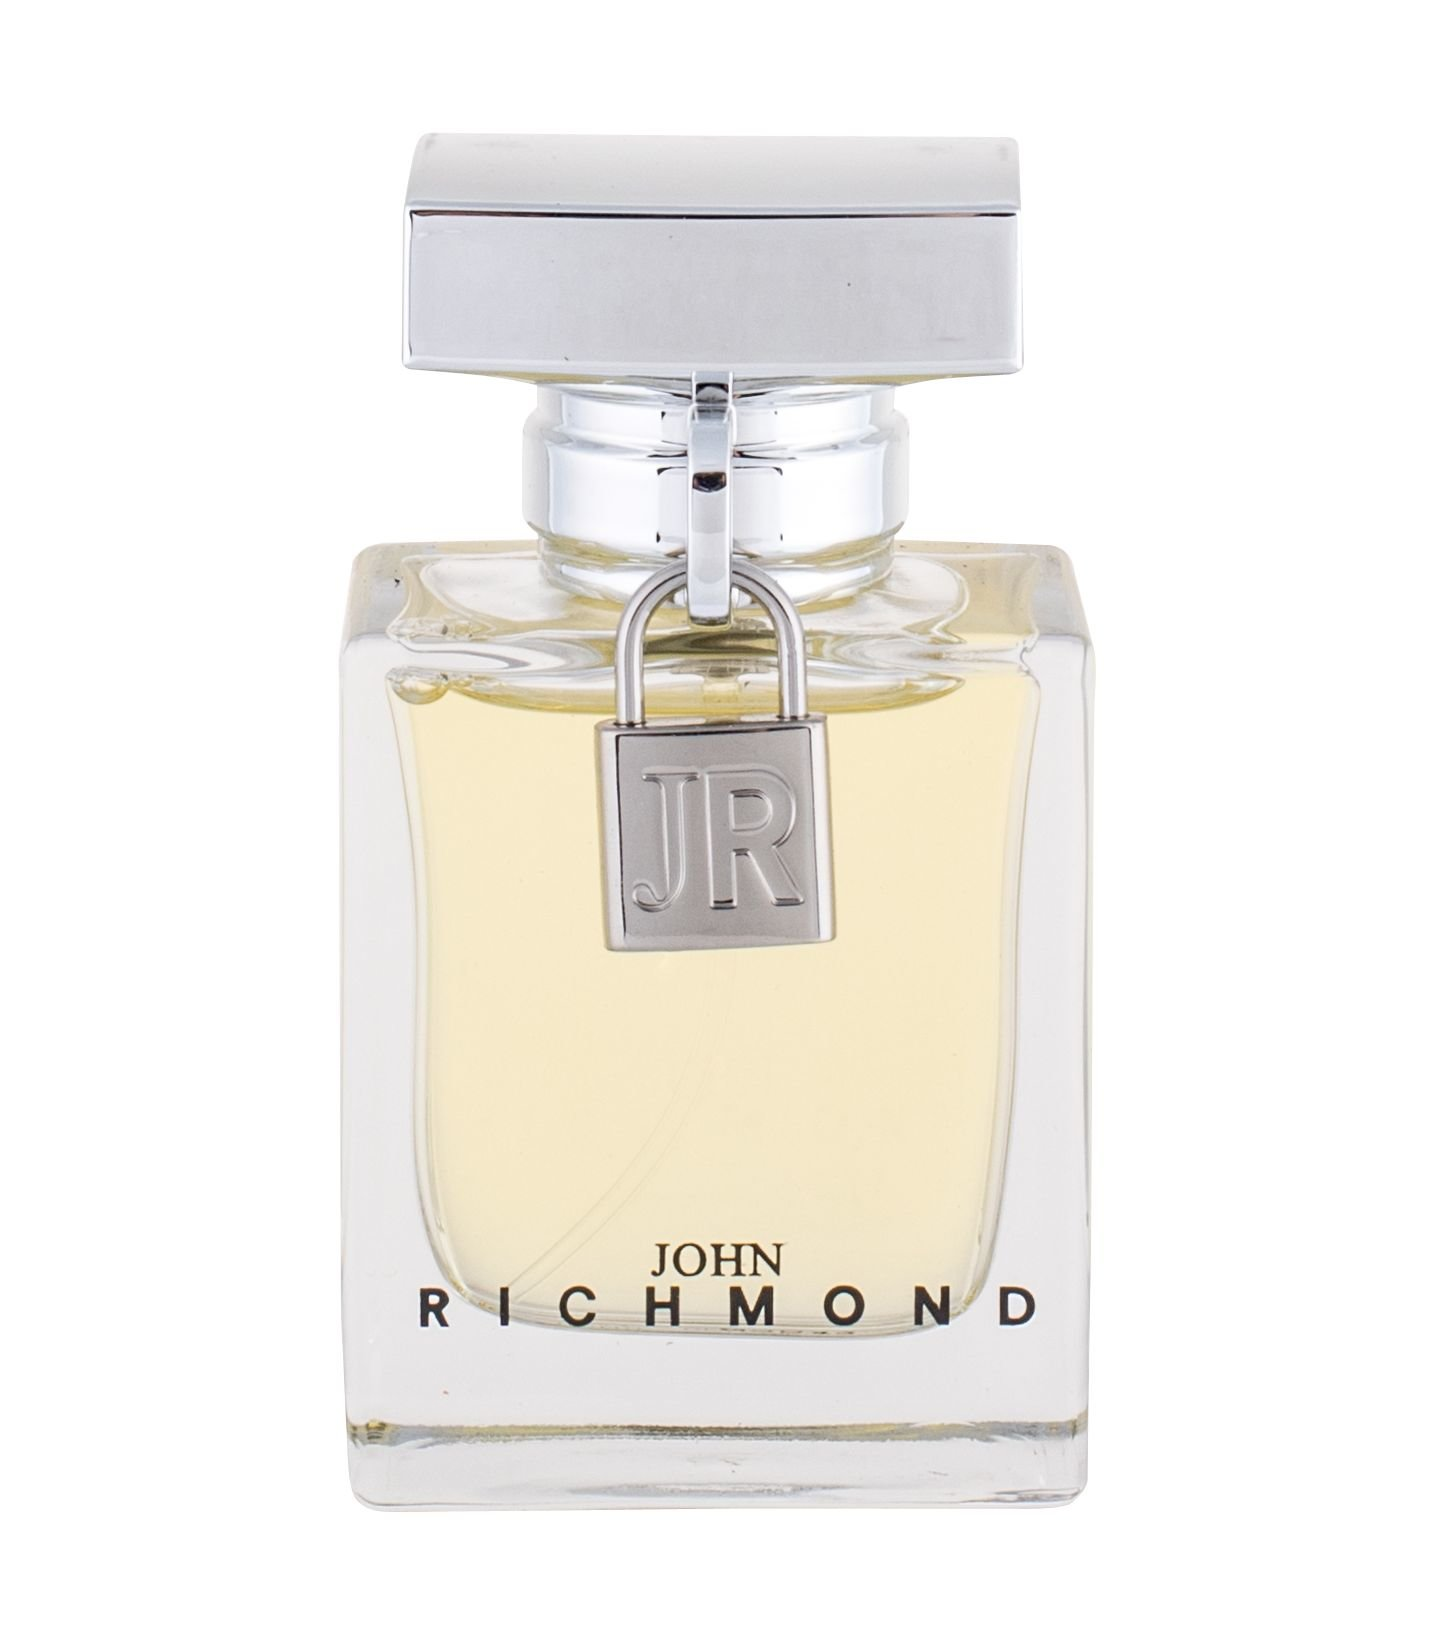 John Richmond John Richmond EDP 30ml